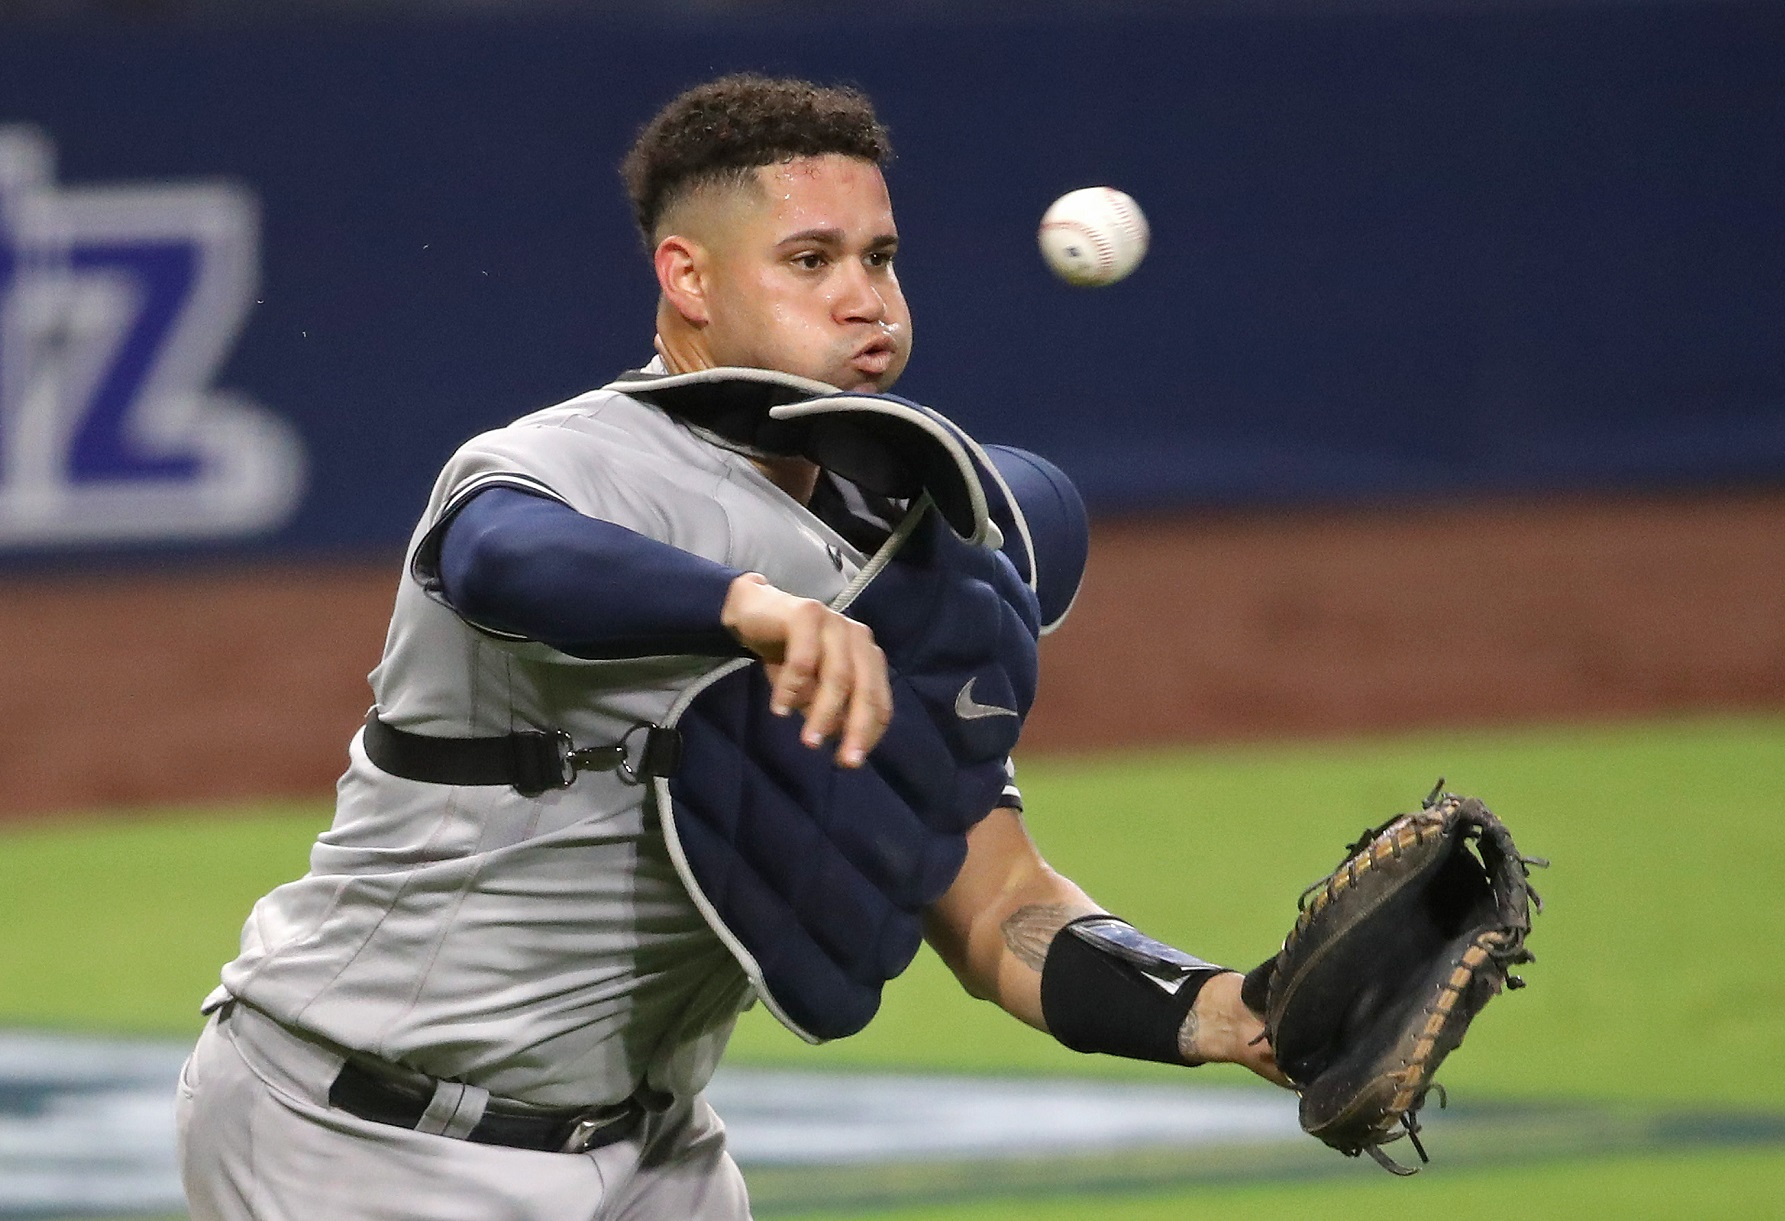 Gary Sanchez Has Made a Bold Prediction About His Future as a New York Yankee